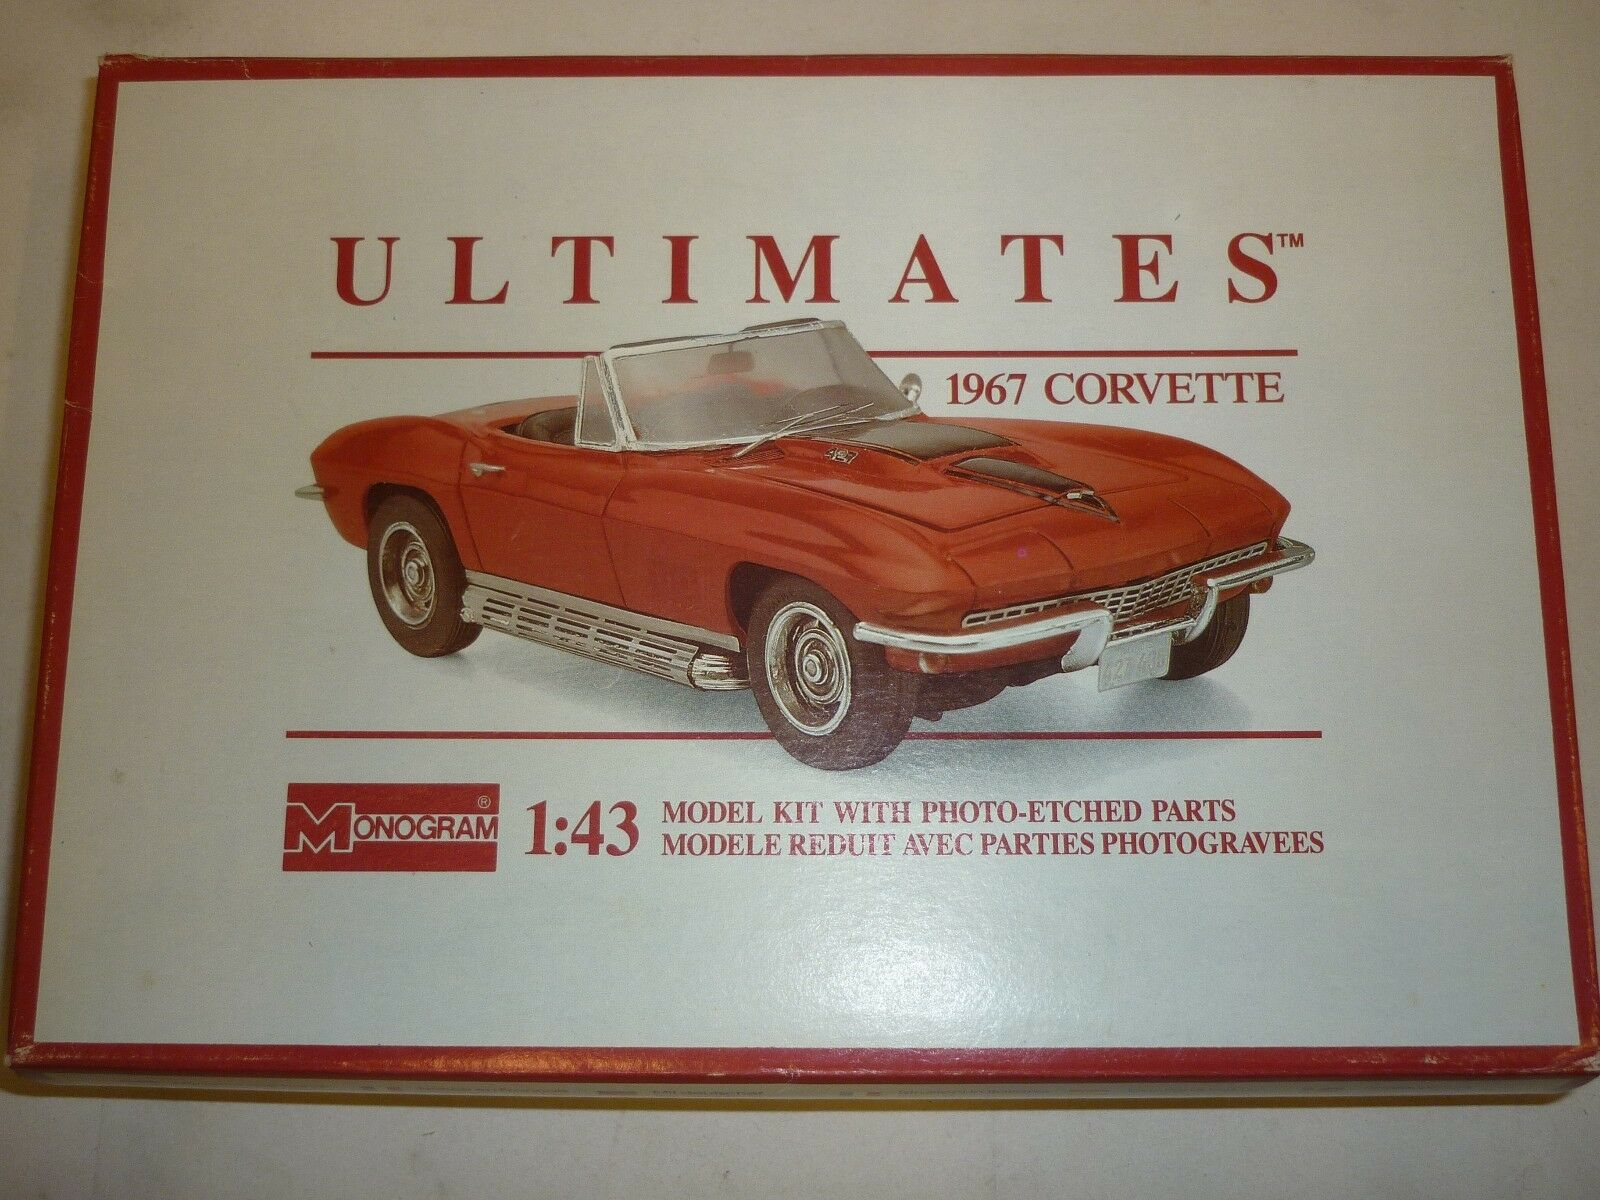 Monogram ultimate's un-made plastic kit of a 1967 Chevrolet corvette.  boxed